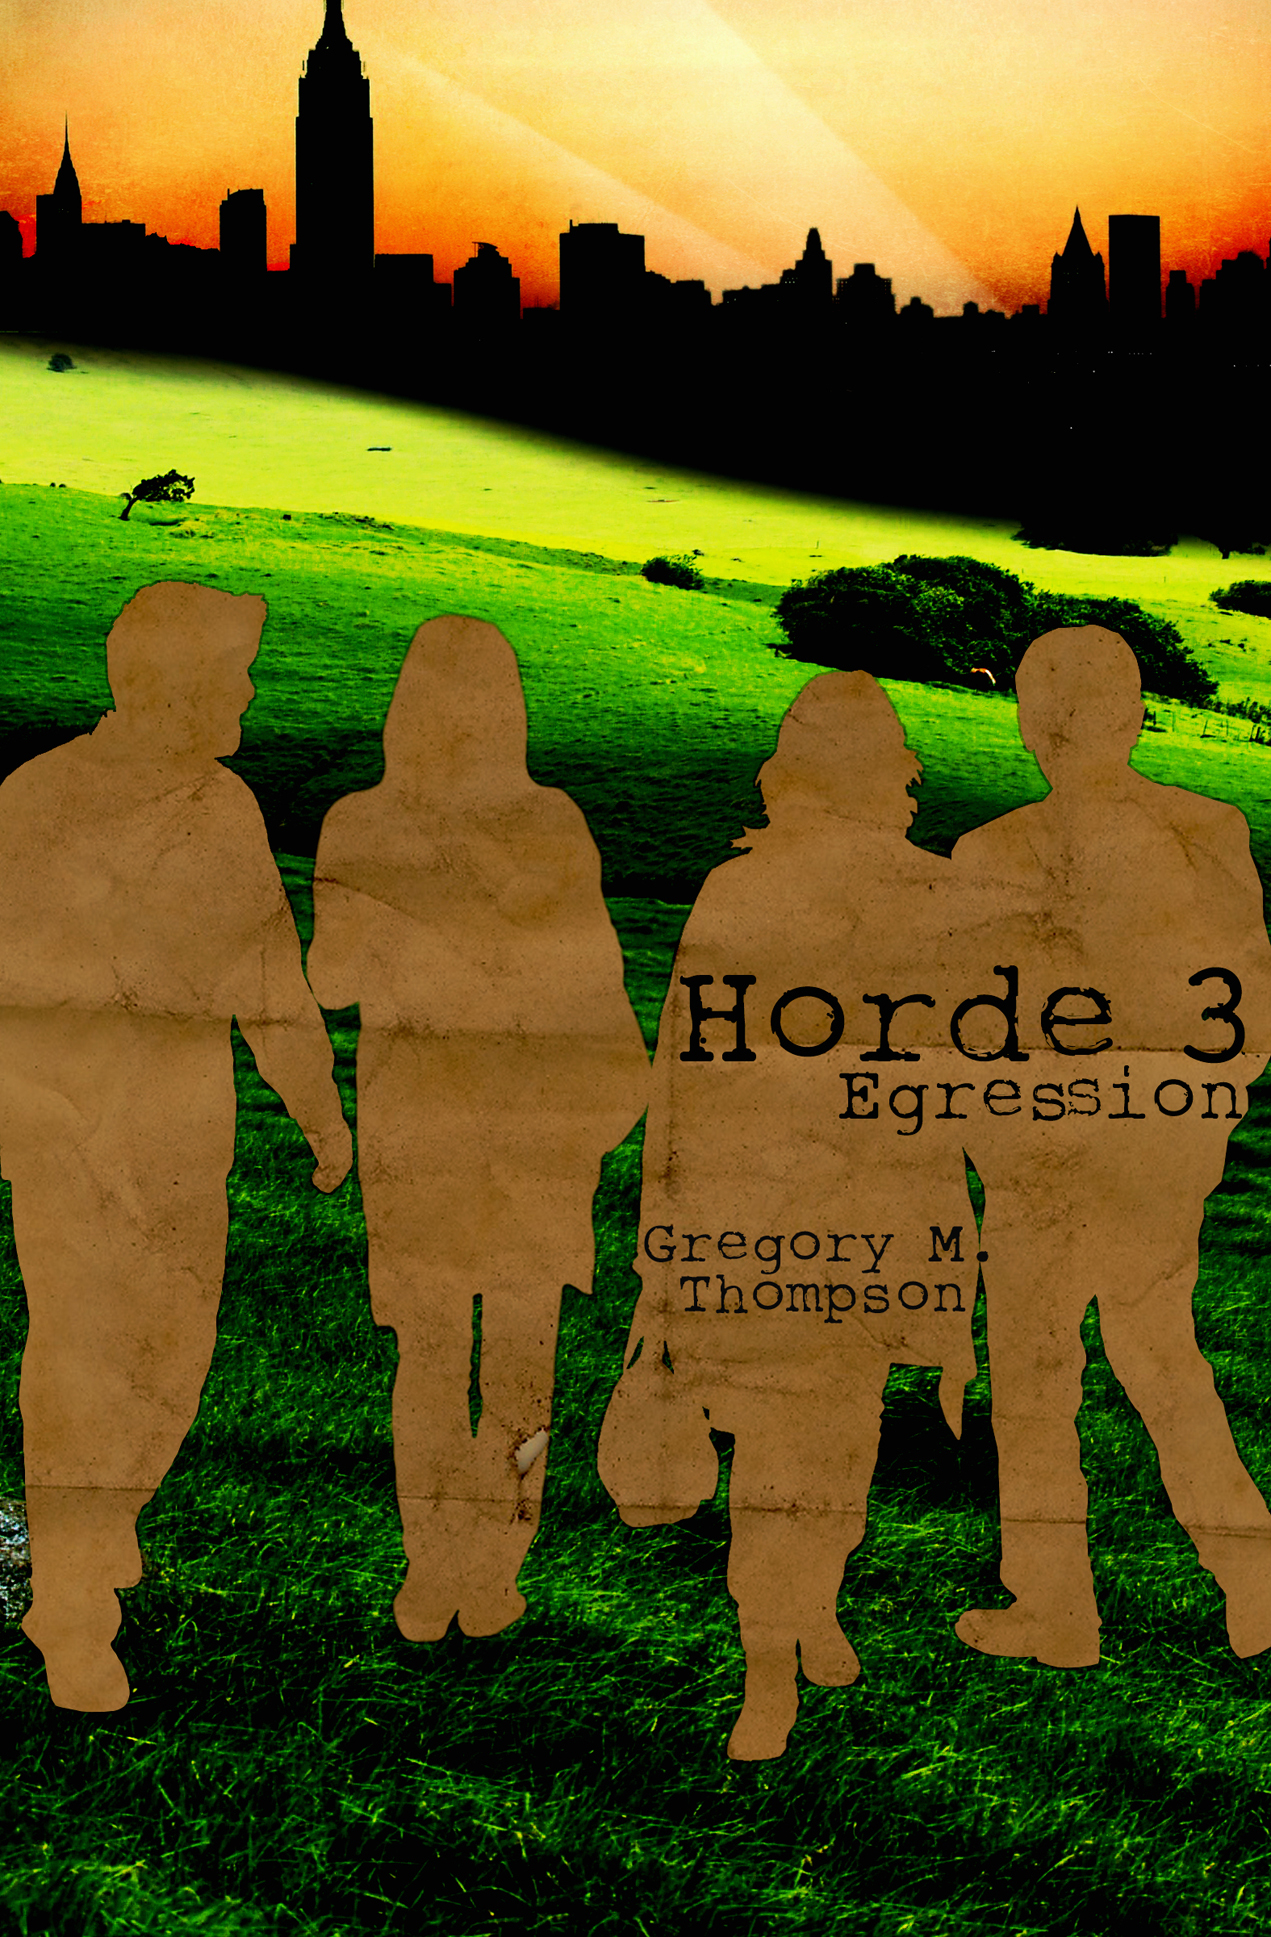 Horde 3 Egression cover